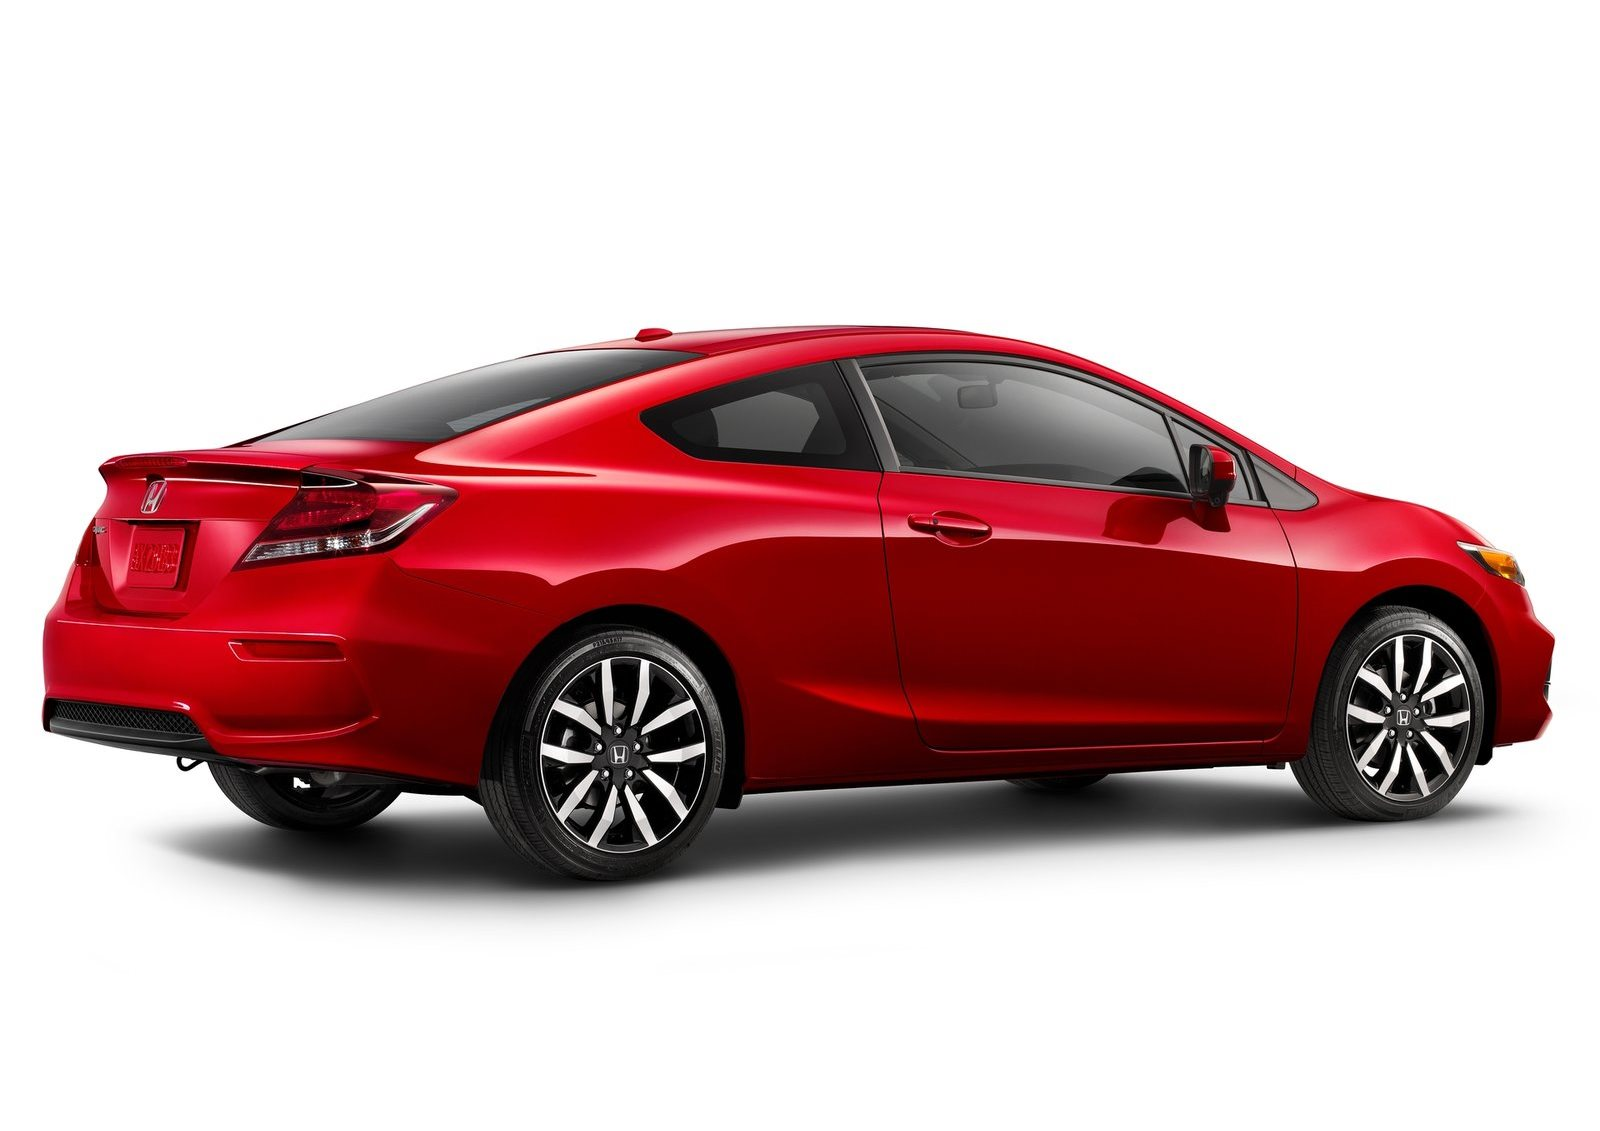 Honda Civic 1.5 2014 photo - 9